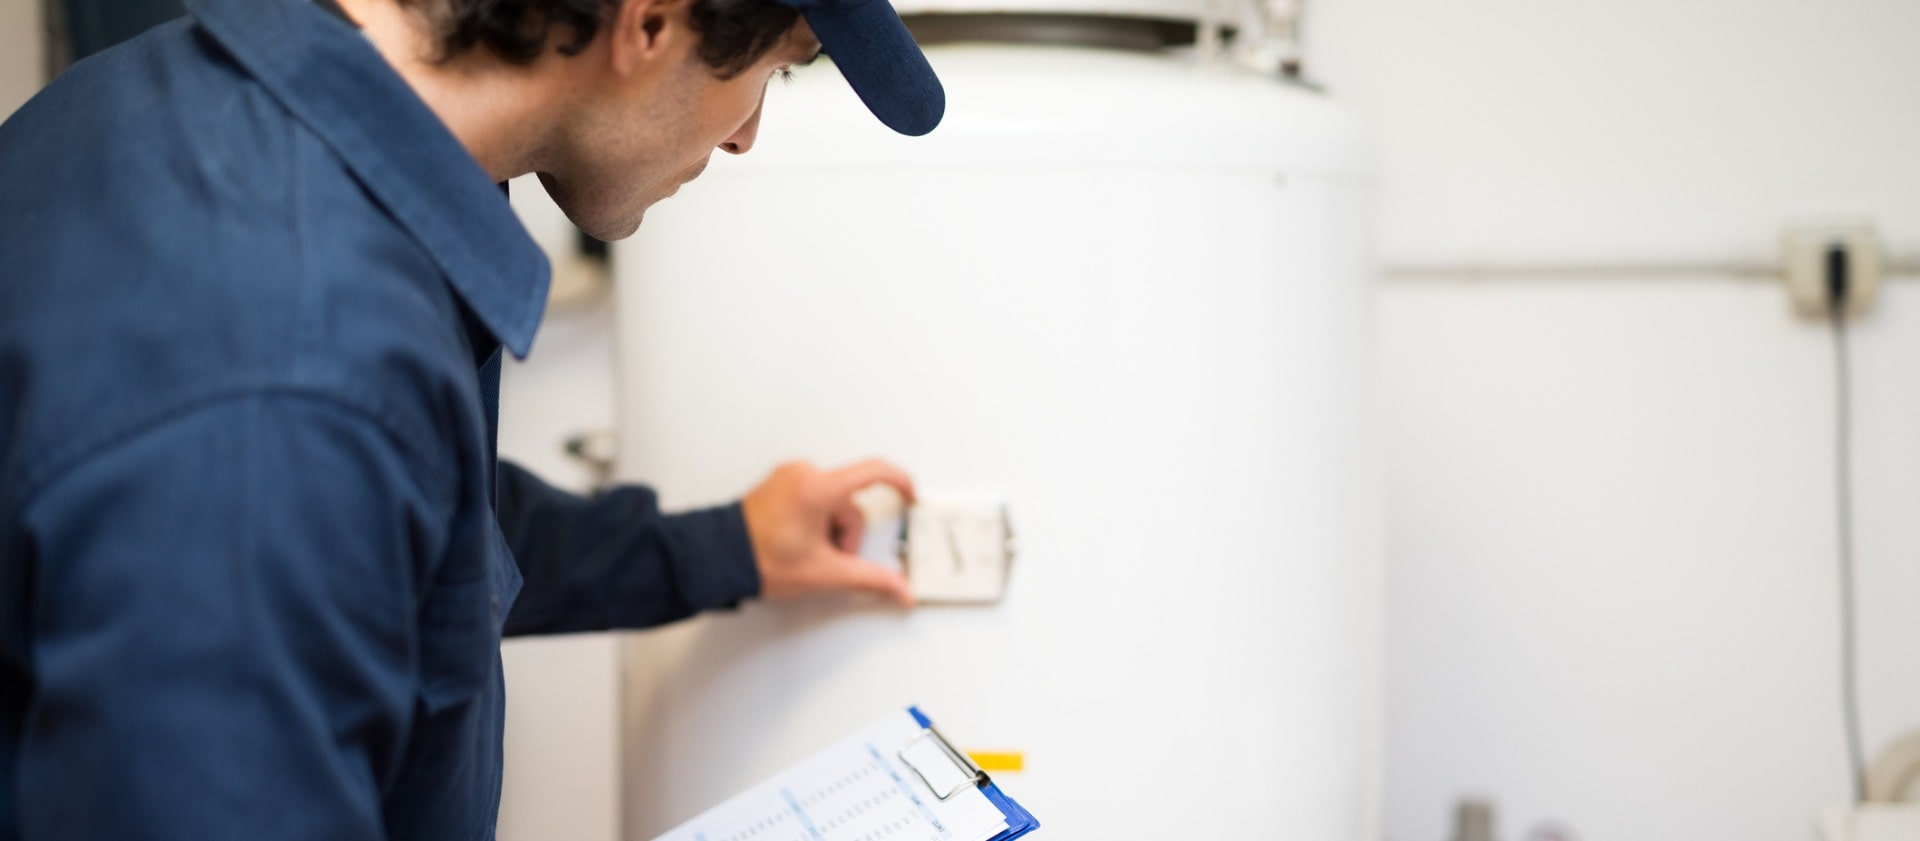 plumber-repairing-an-hotwater-heater-picture-id597967152-min